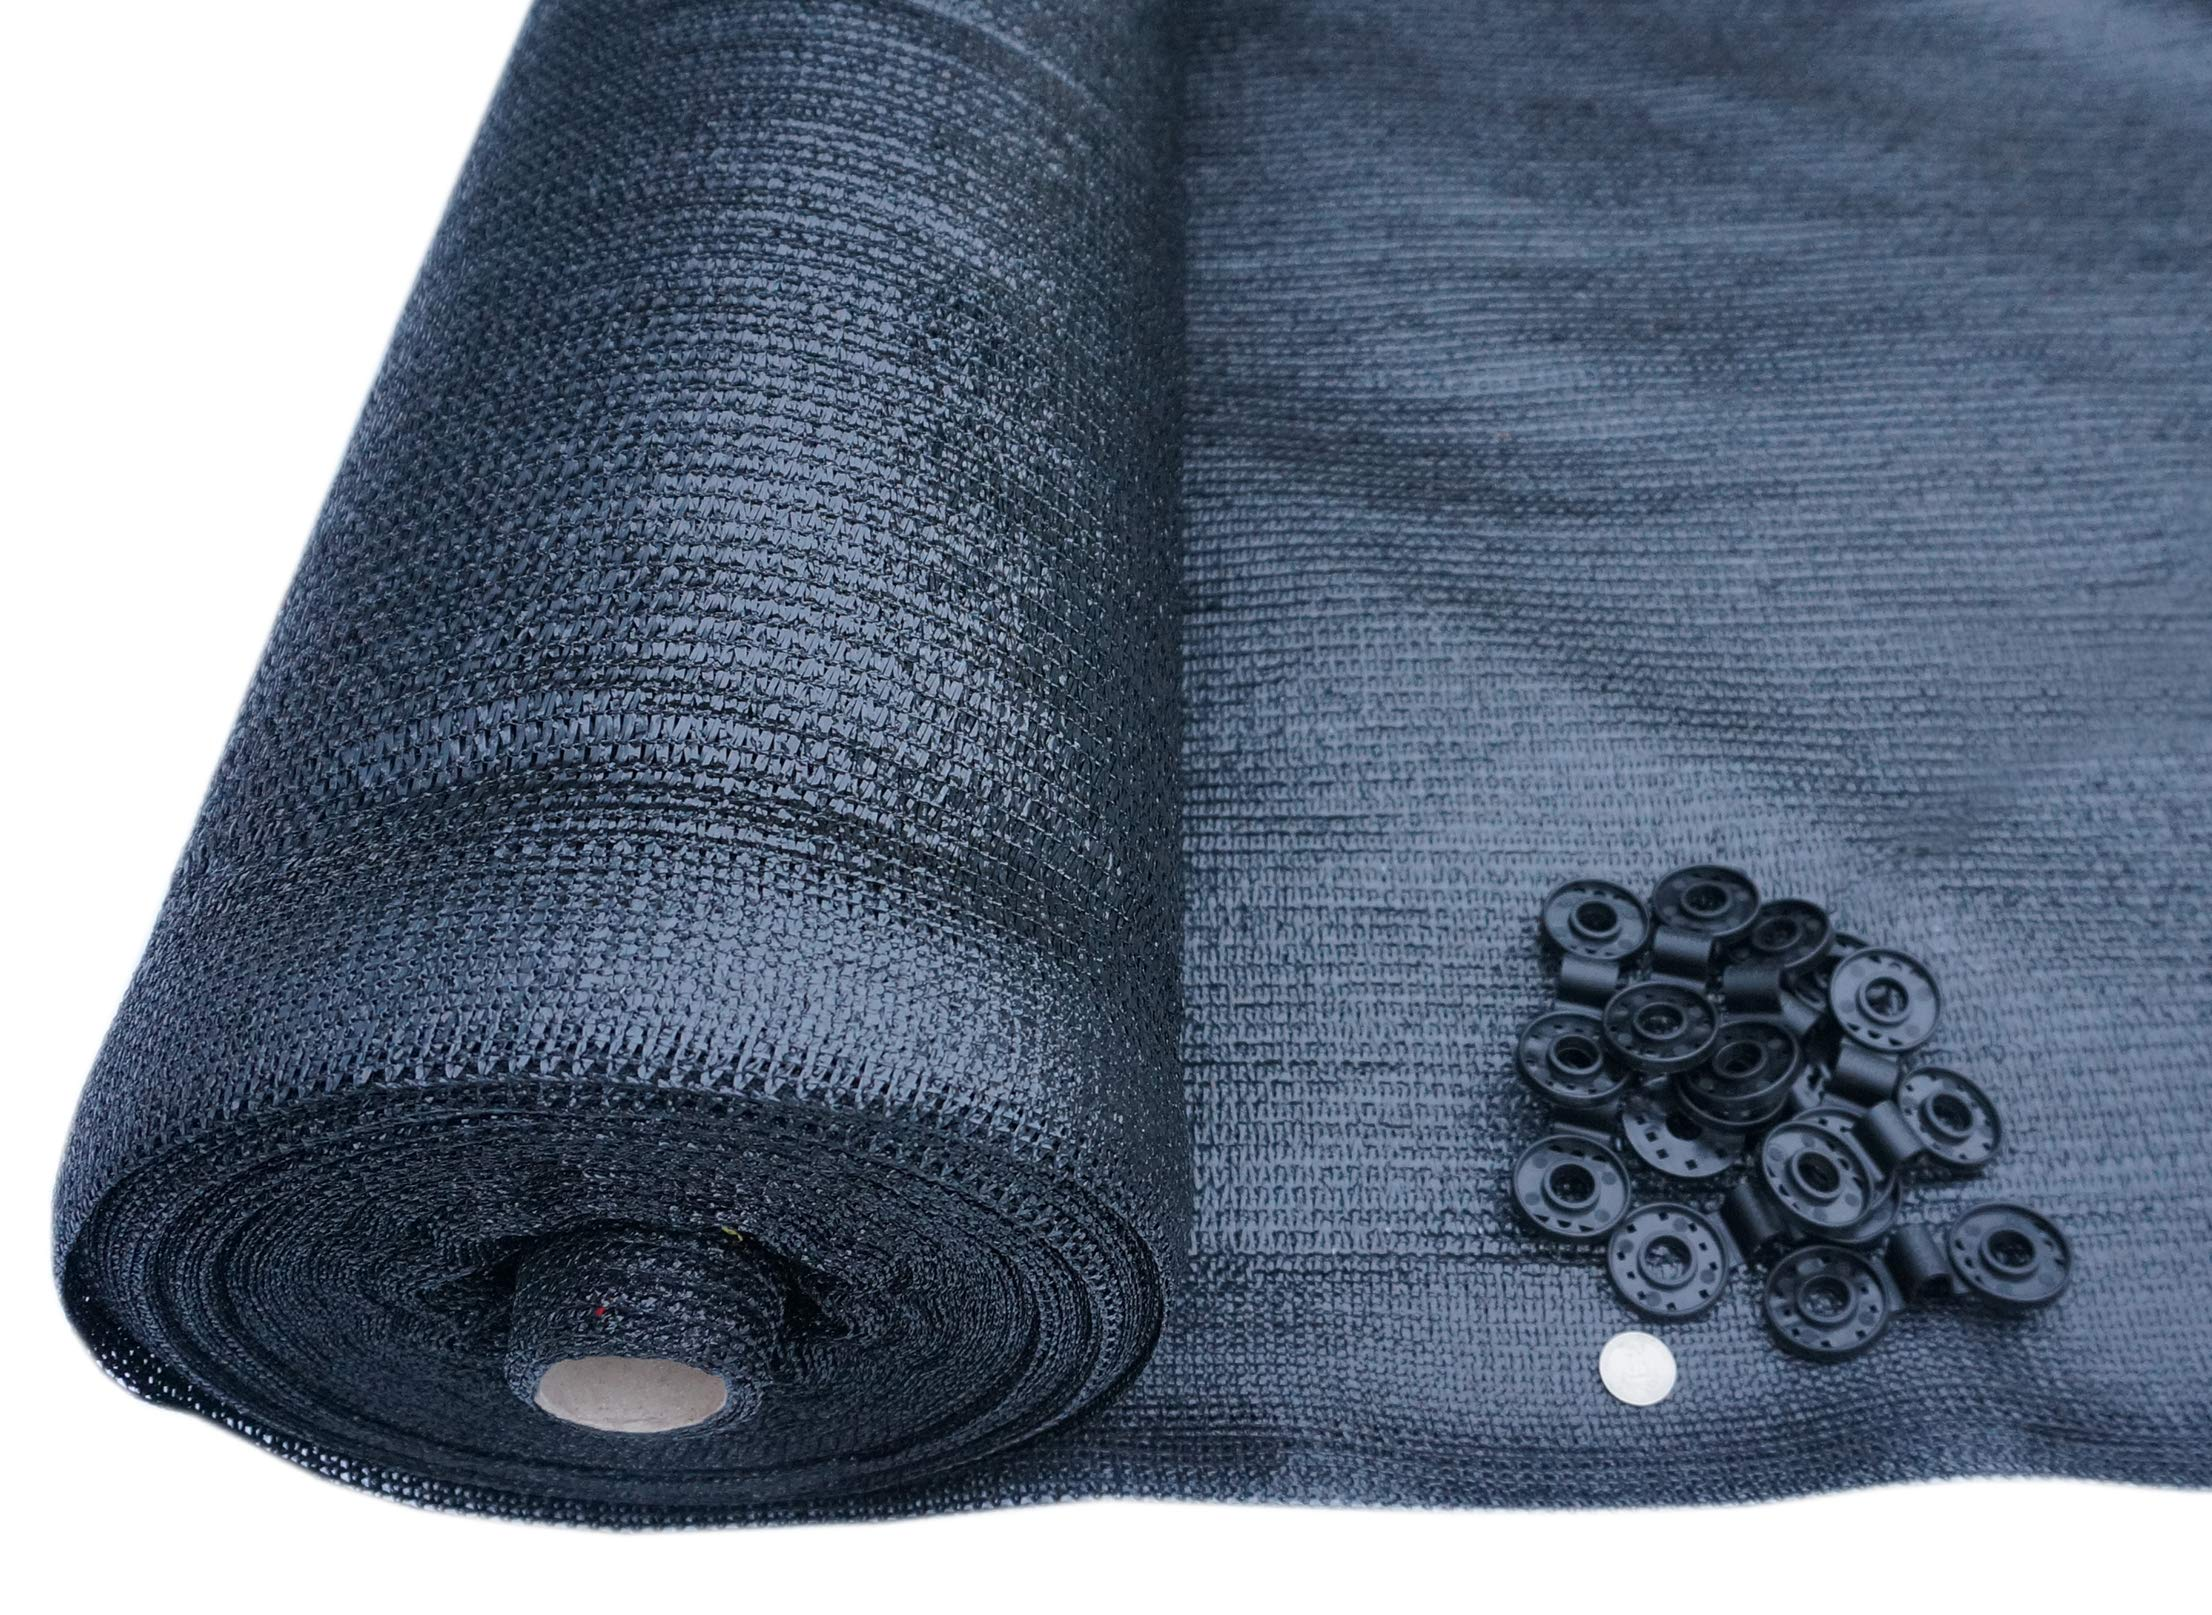 SHANS 60% Black Sunblock Shade Cloth for Plant Cover, Greenhouse, Barn or Kennel, Pool, Pergola or Carport, Cut Edge UV Resistant Fabric with Free Fabric Clips (10ft x 6ft)